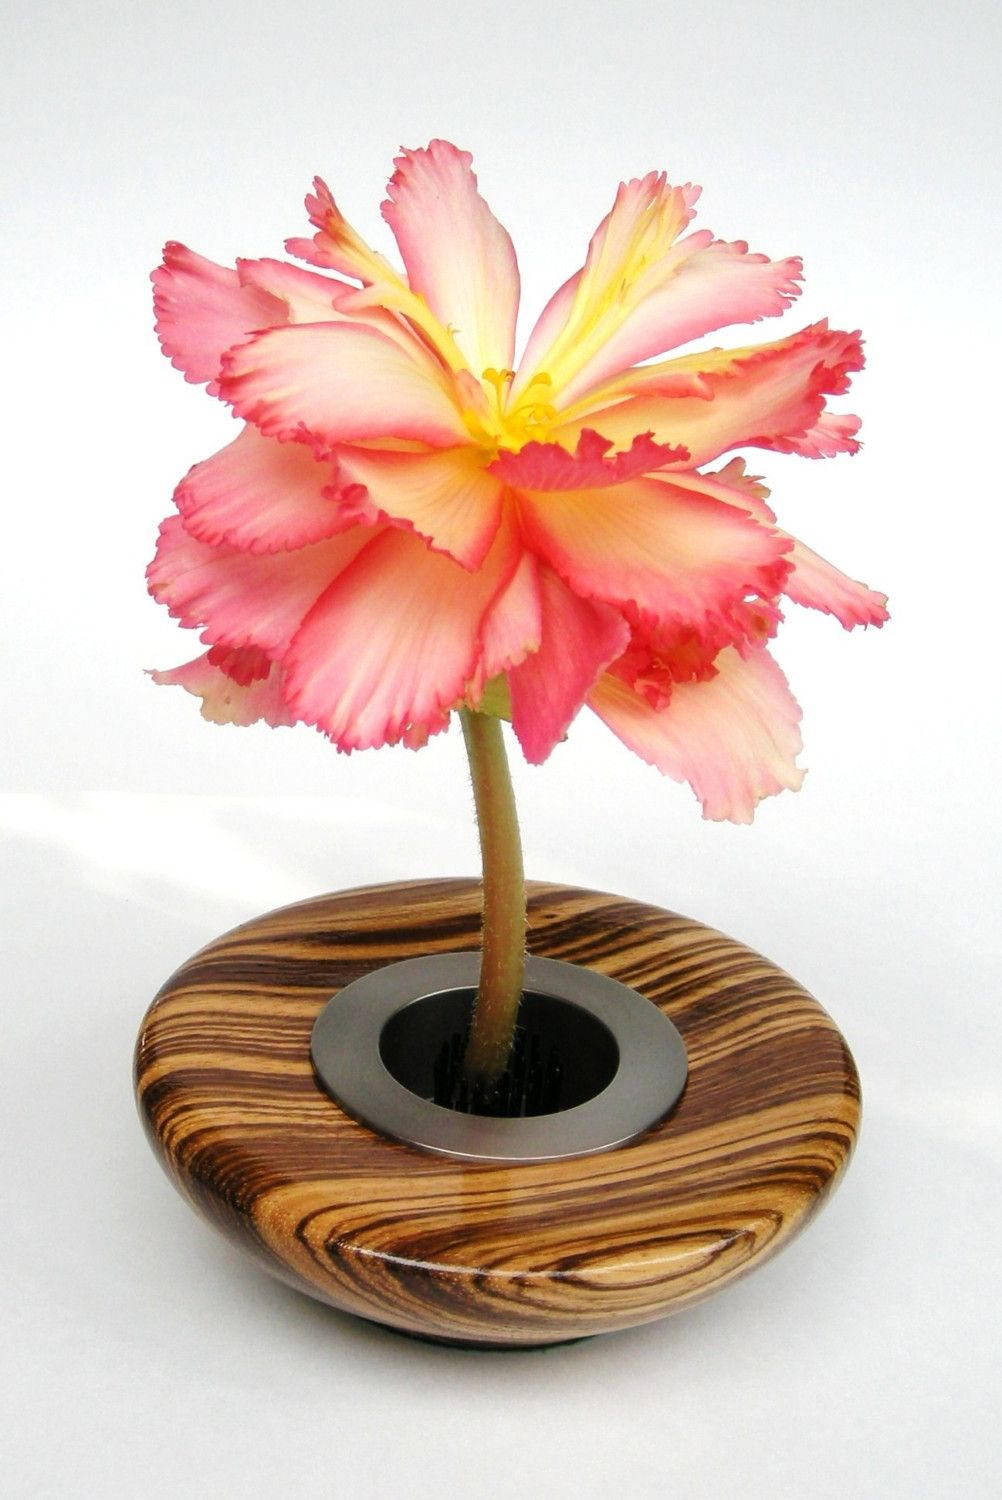 Wooden flowers in a vase medium 80 x 80 pixel large 920 x wooden flowers in a vase medium 80 x 80 pixel large 920 floridaeventfo Images